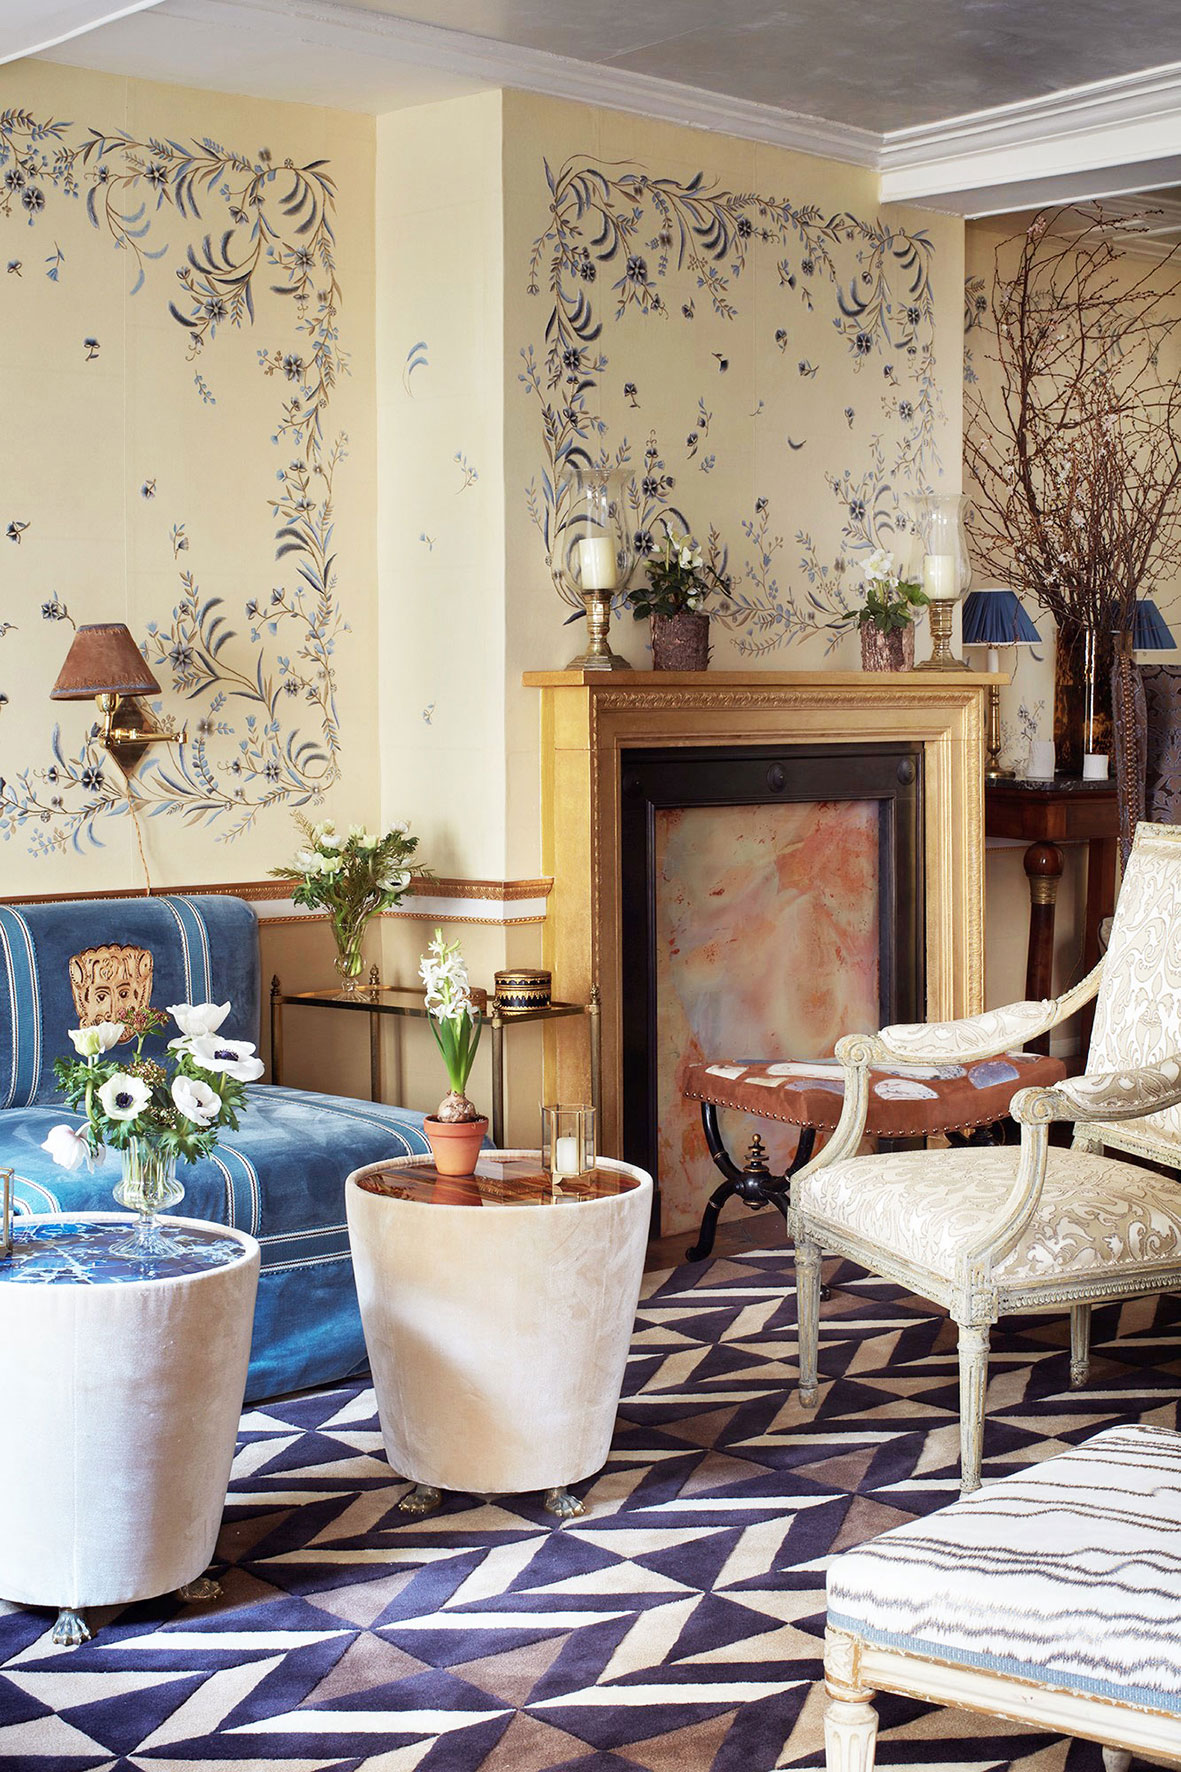 de Gournay hand painted and hand embroidered 'Elisavetha' wallcovering, 'Lionet' upholstery detail, hand embroidered 'Sarafan' damask upholstery, hand embroidered 'Faux Bois' upholstery from the Salon Privé collection by Alessandra Branca